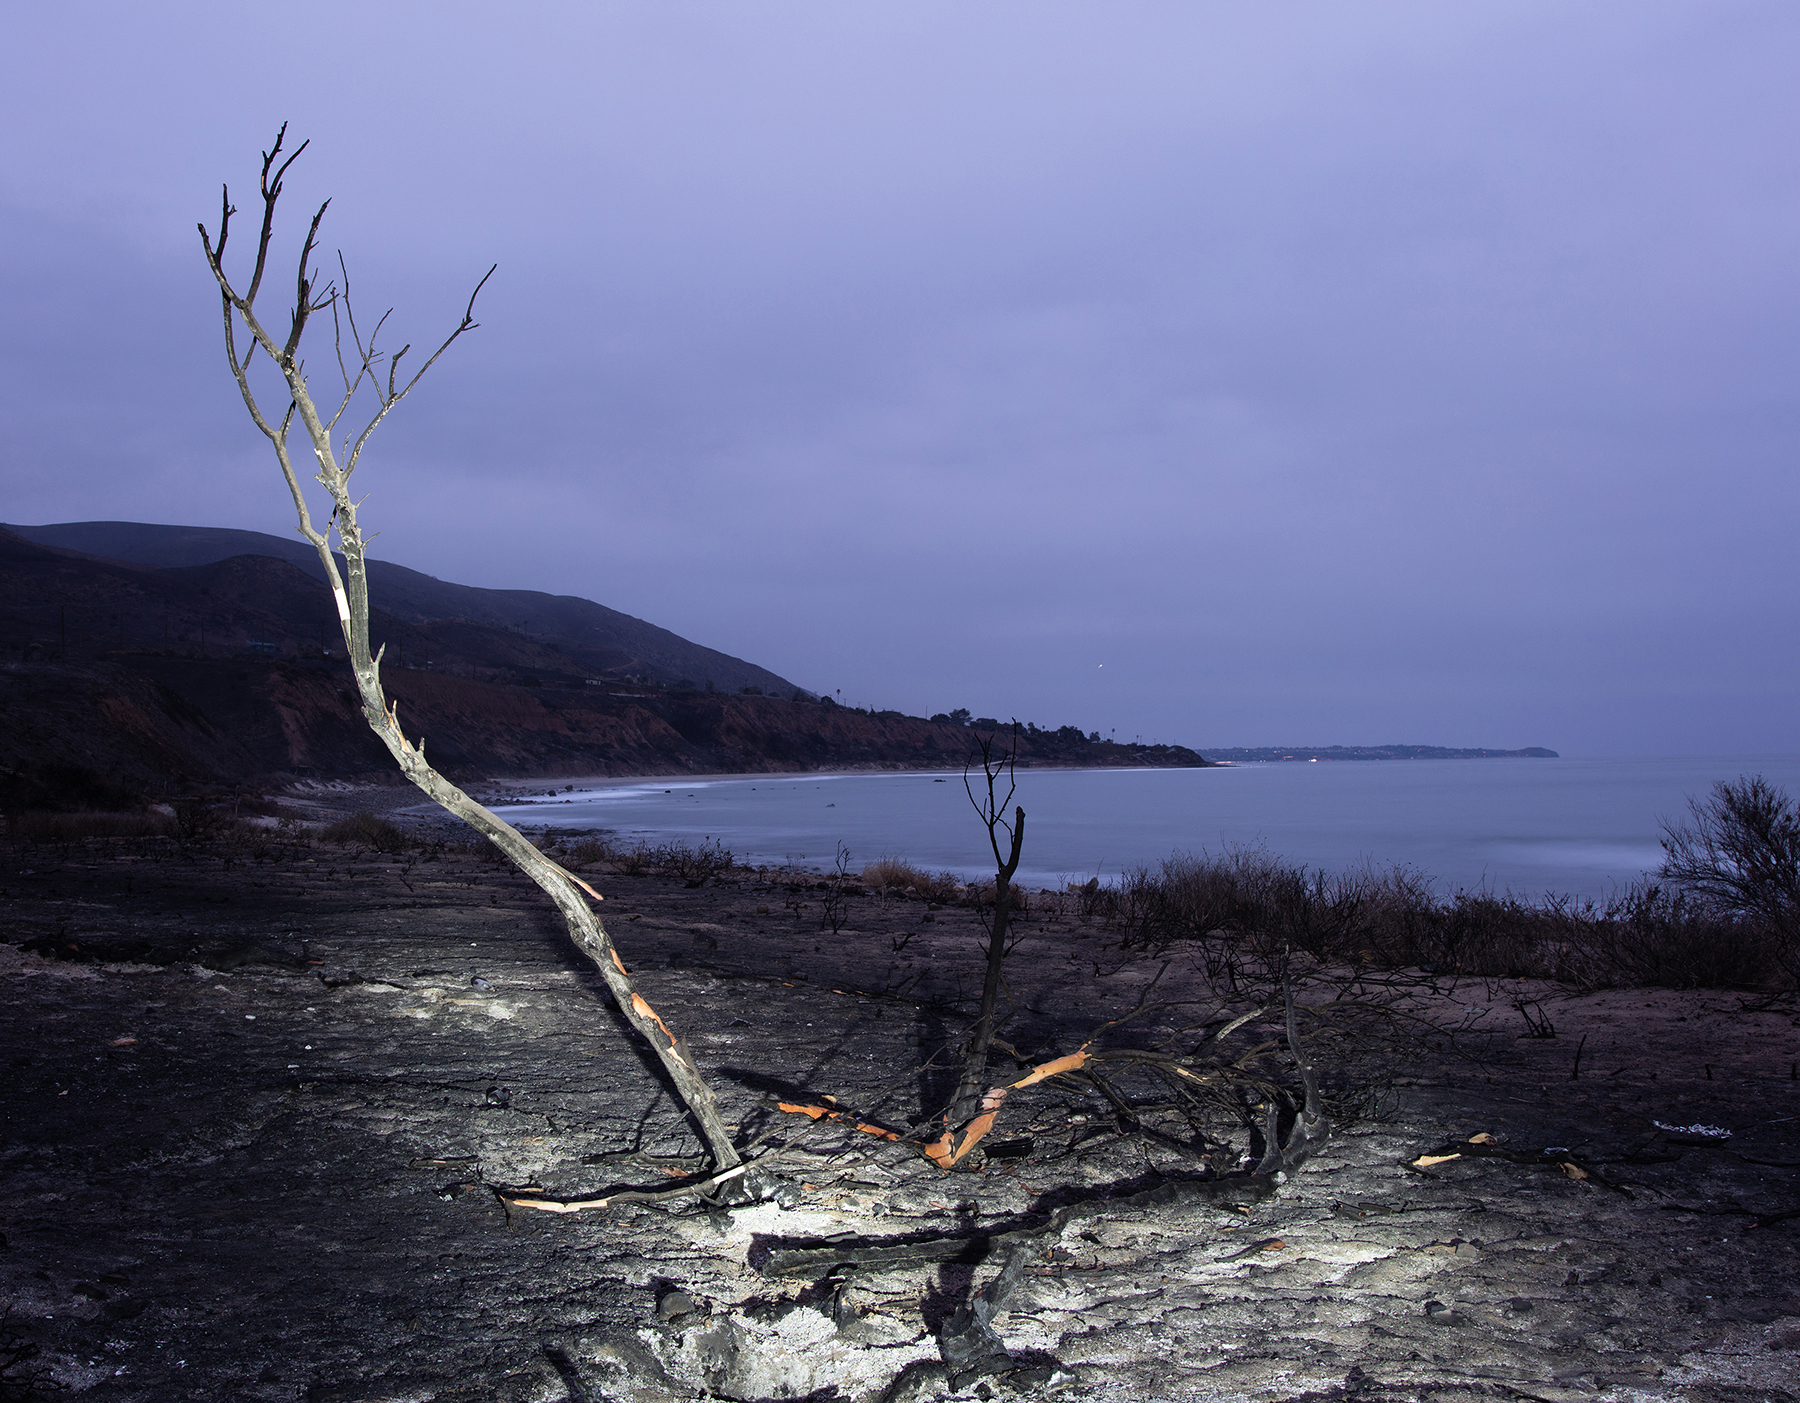 The Leo Carrillo State Park in Malibu was devastated by the Woolsey fire.